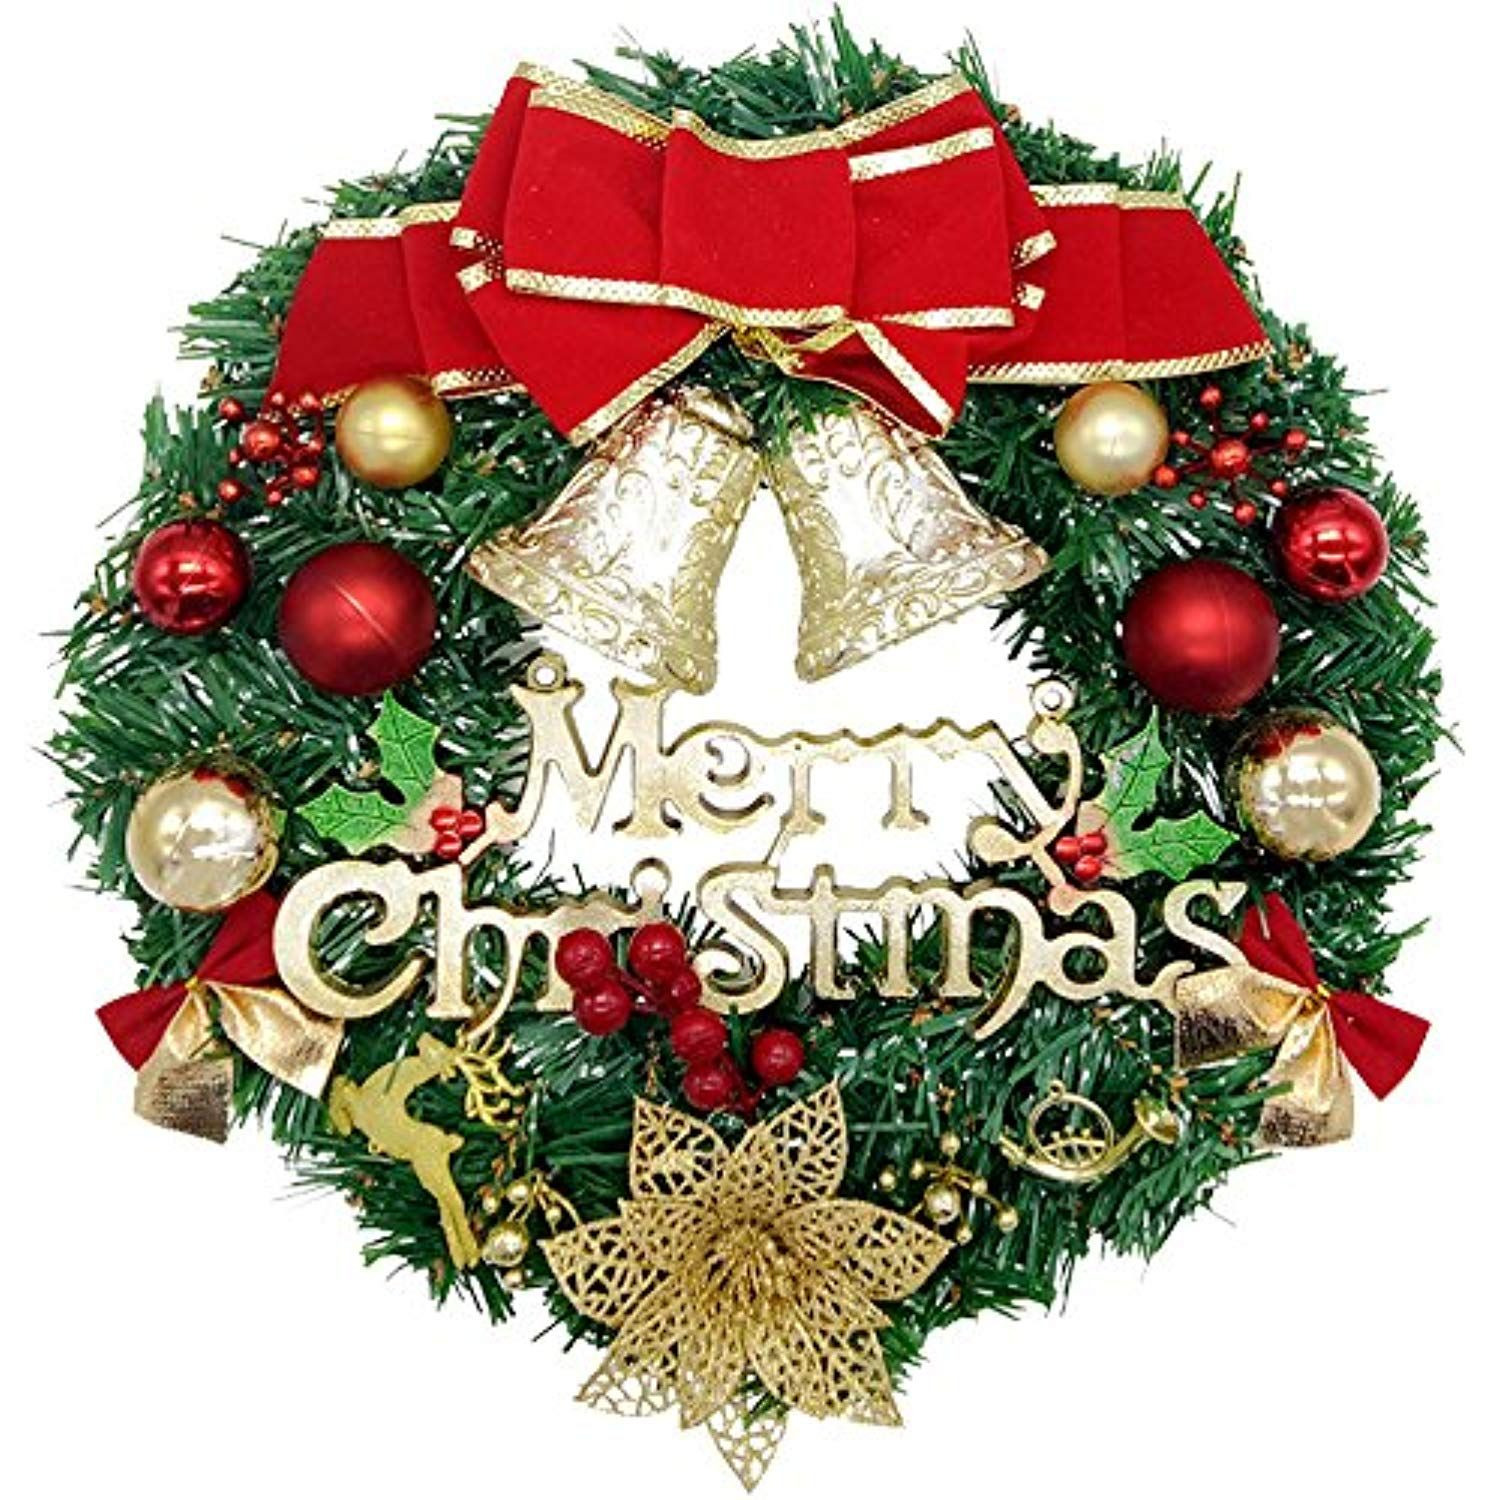 Christmas Wreath, Dadiii Merry Christmas Garland Ornament Decorations With Bowknot,